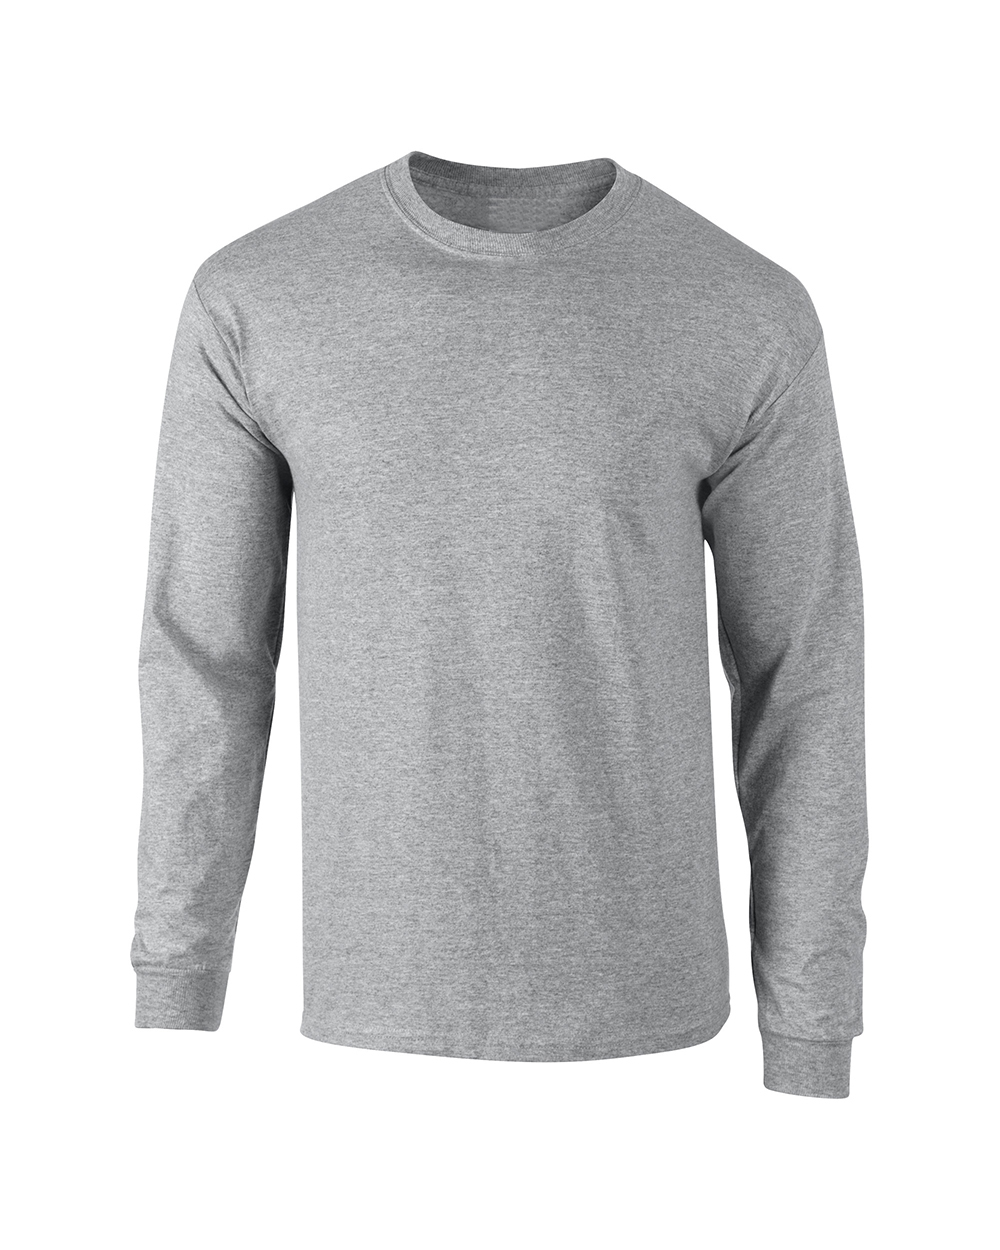 grey-marle-longsleeve1 Home